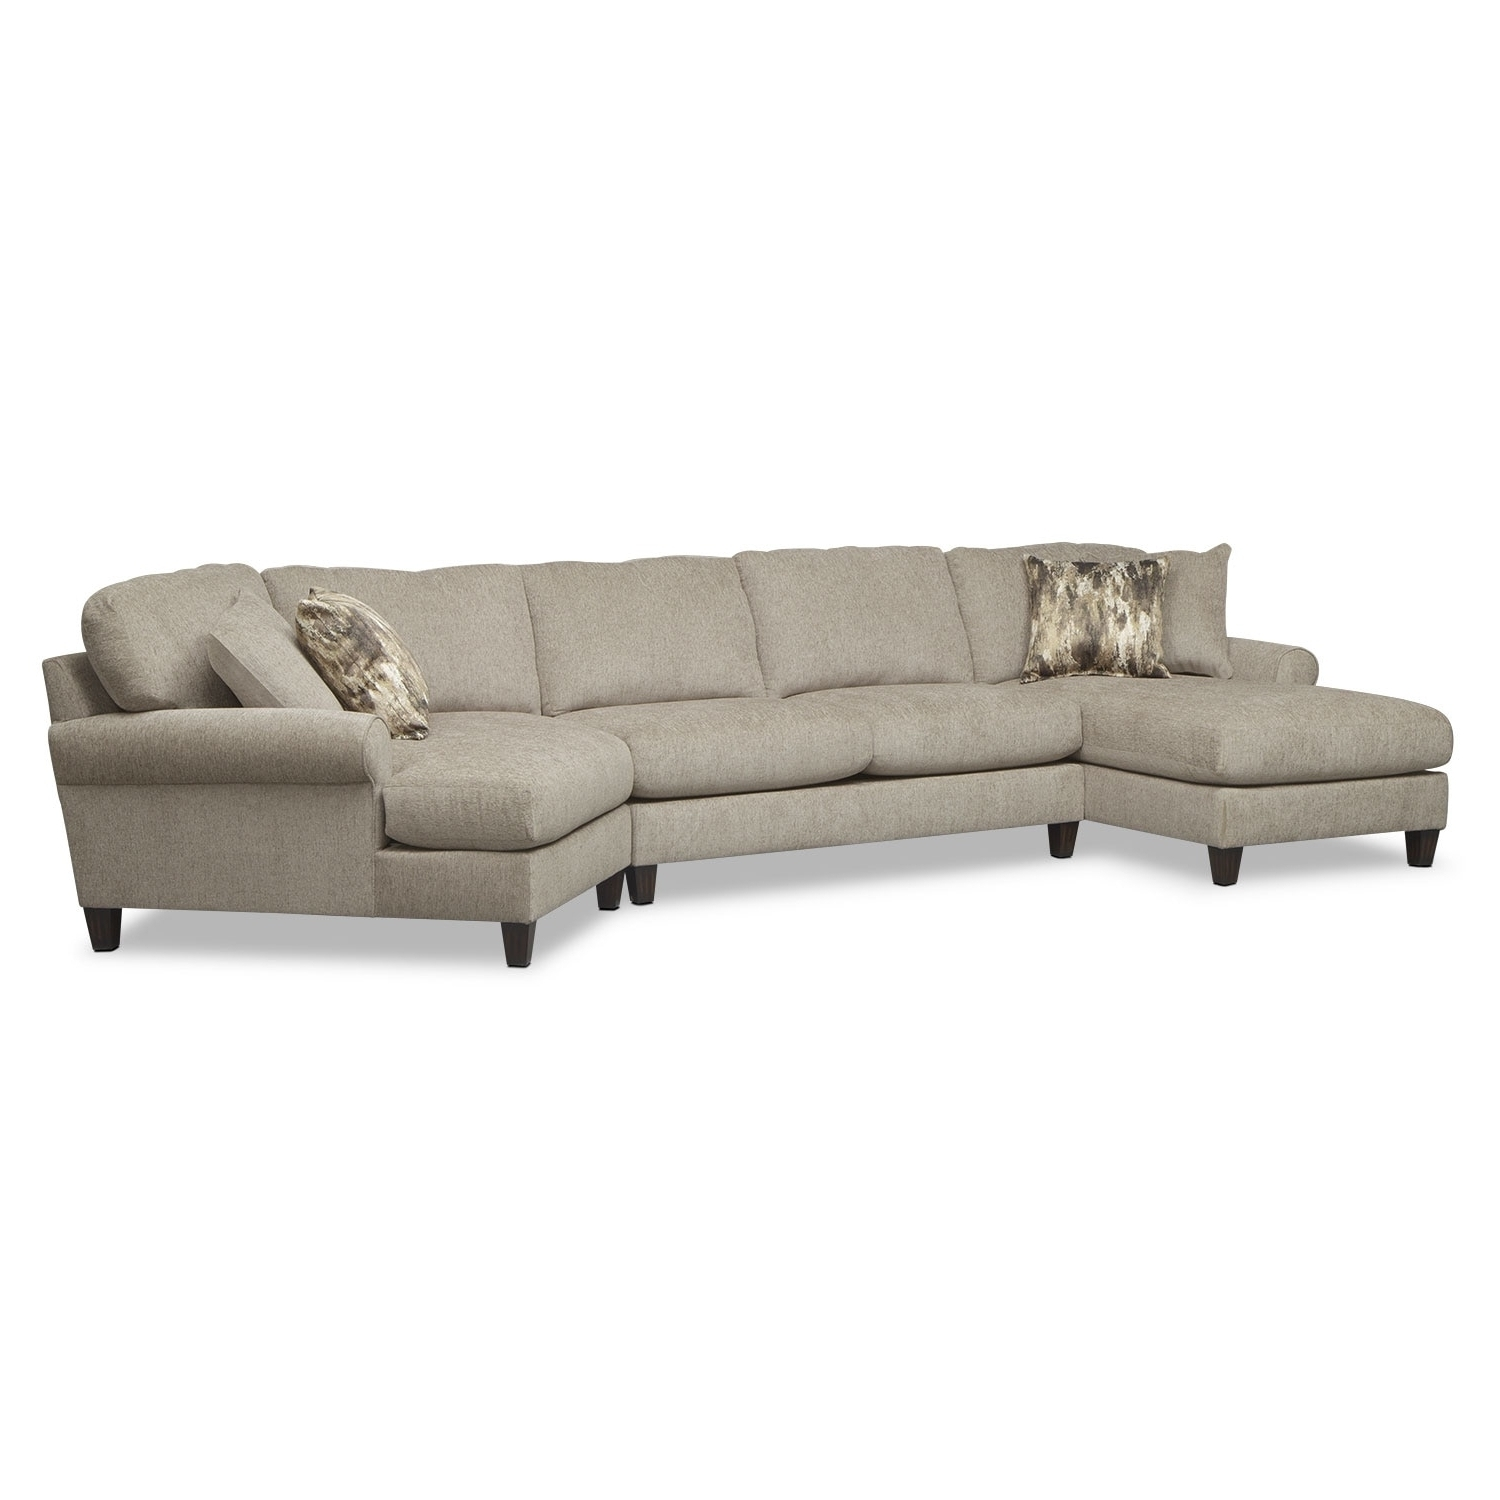 Current Furniture : Craigslist Furniture Quad City Iowa Furniture With Quad Cities Sectional Sofas (View 2 of 15)